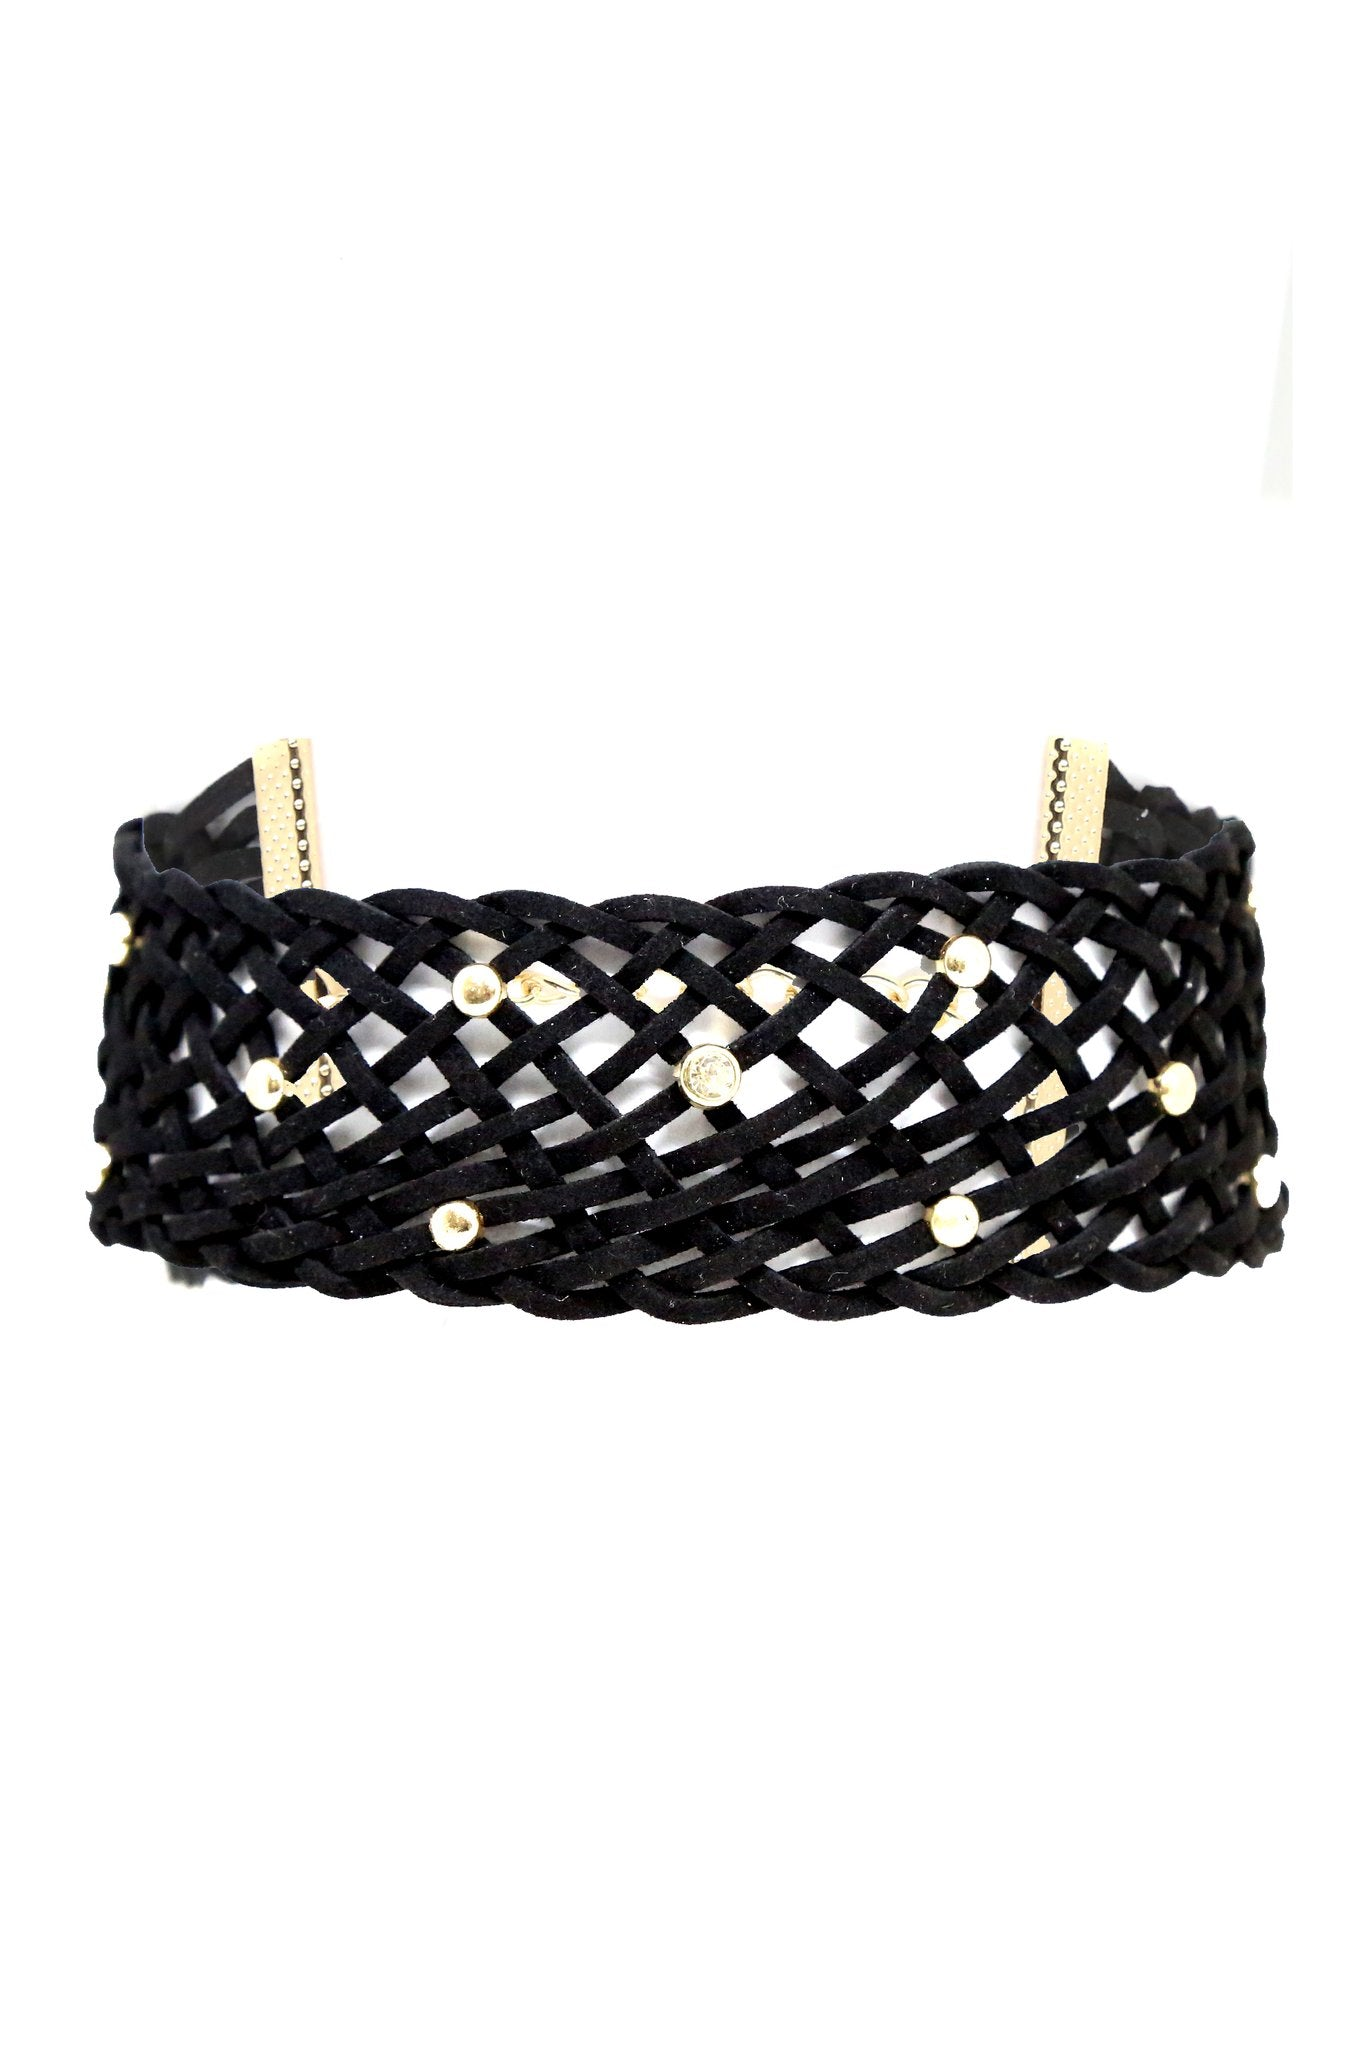 Netted Choker in Black and Gold